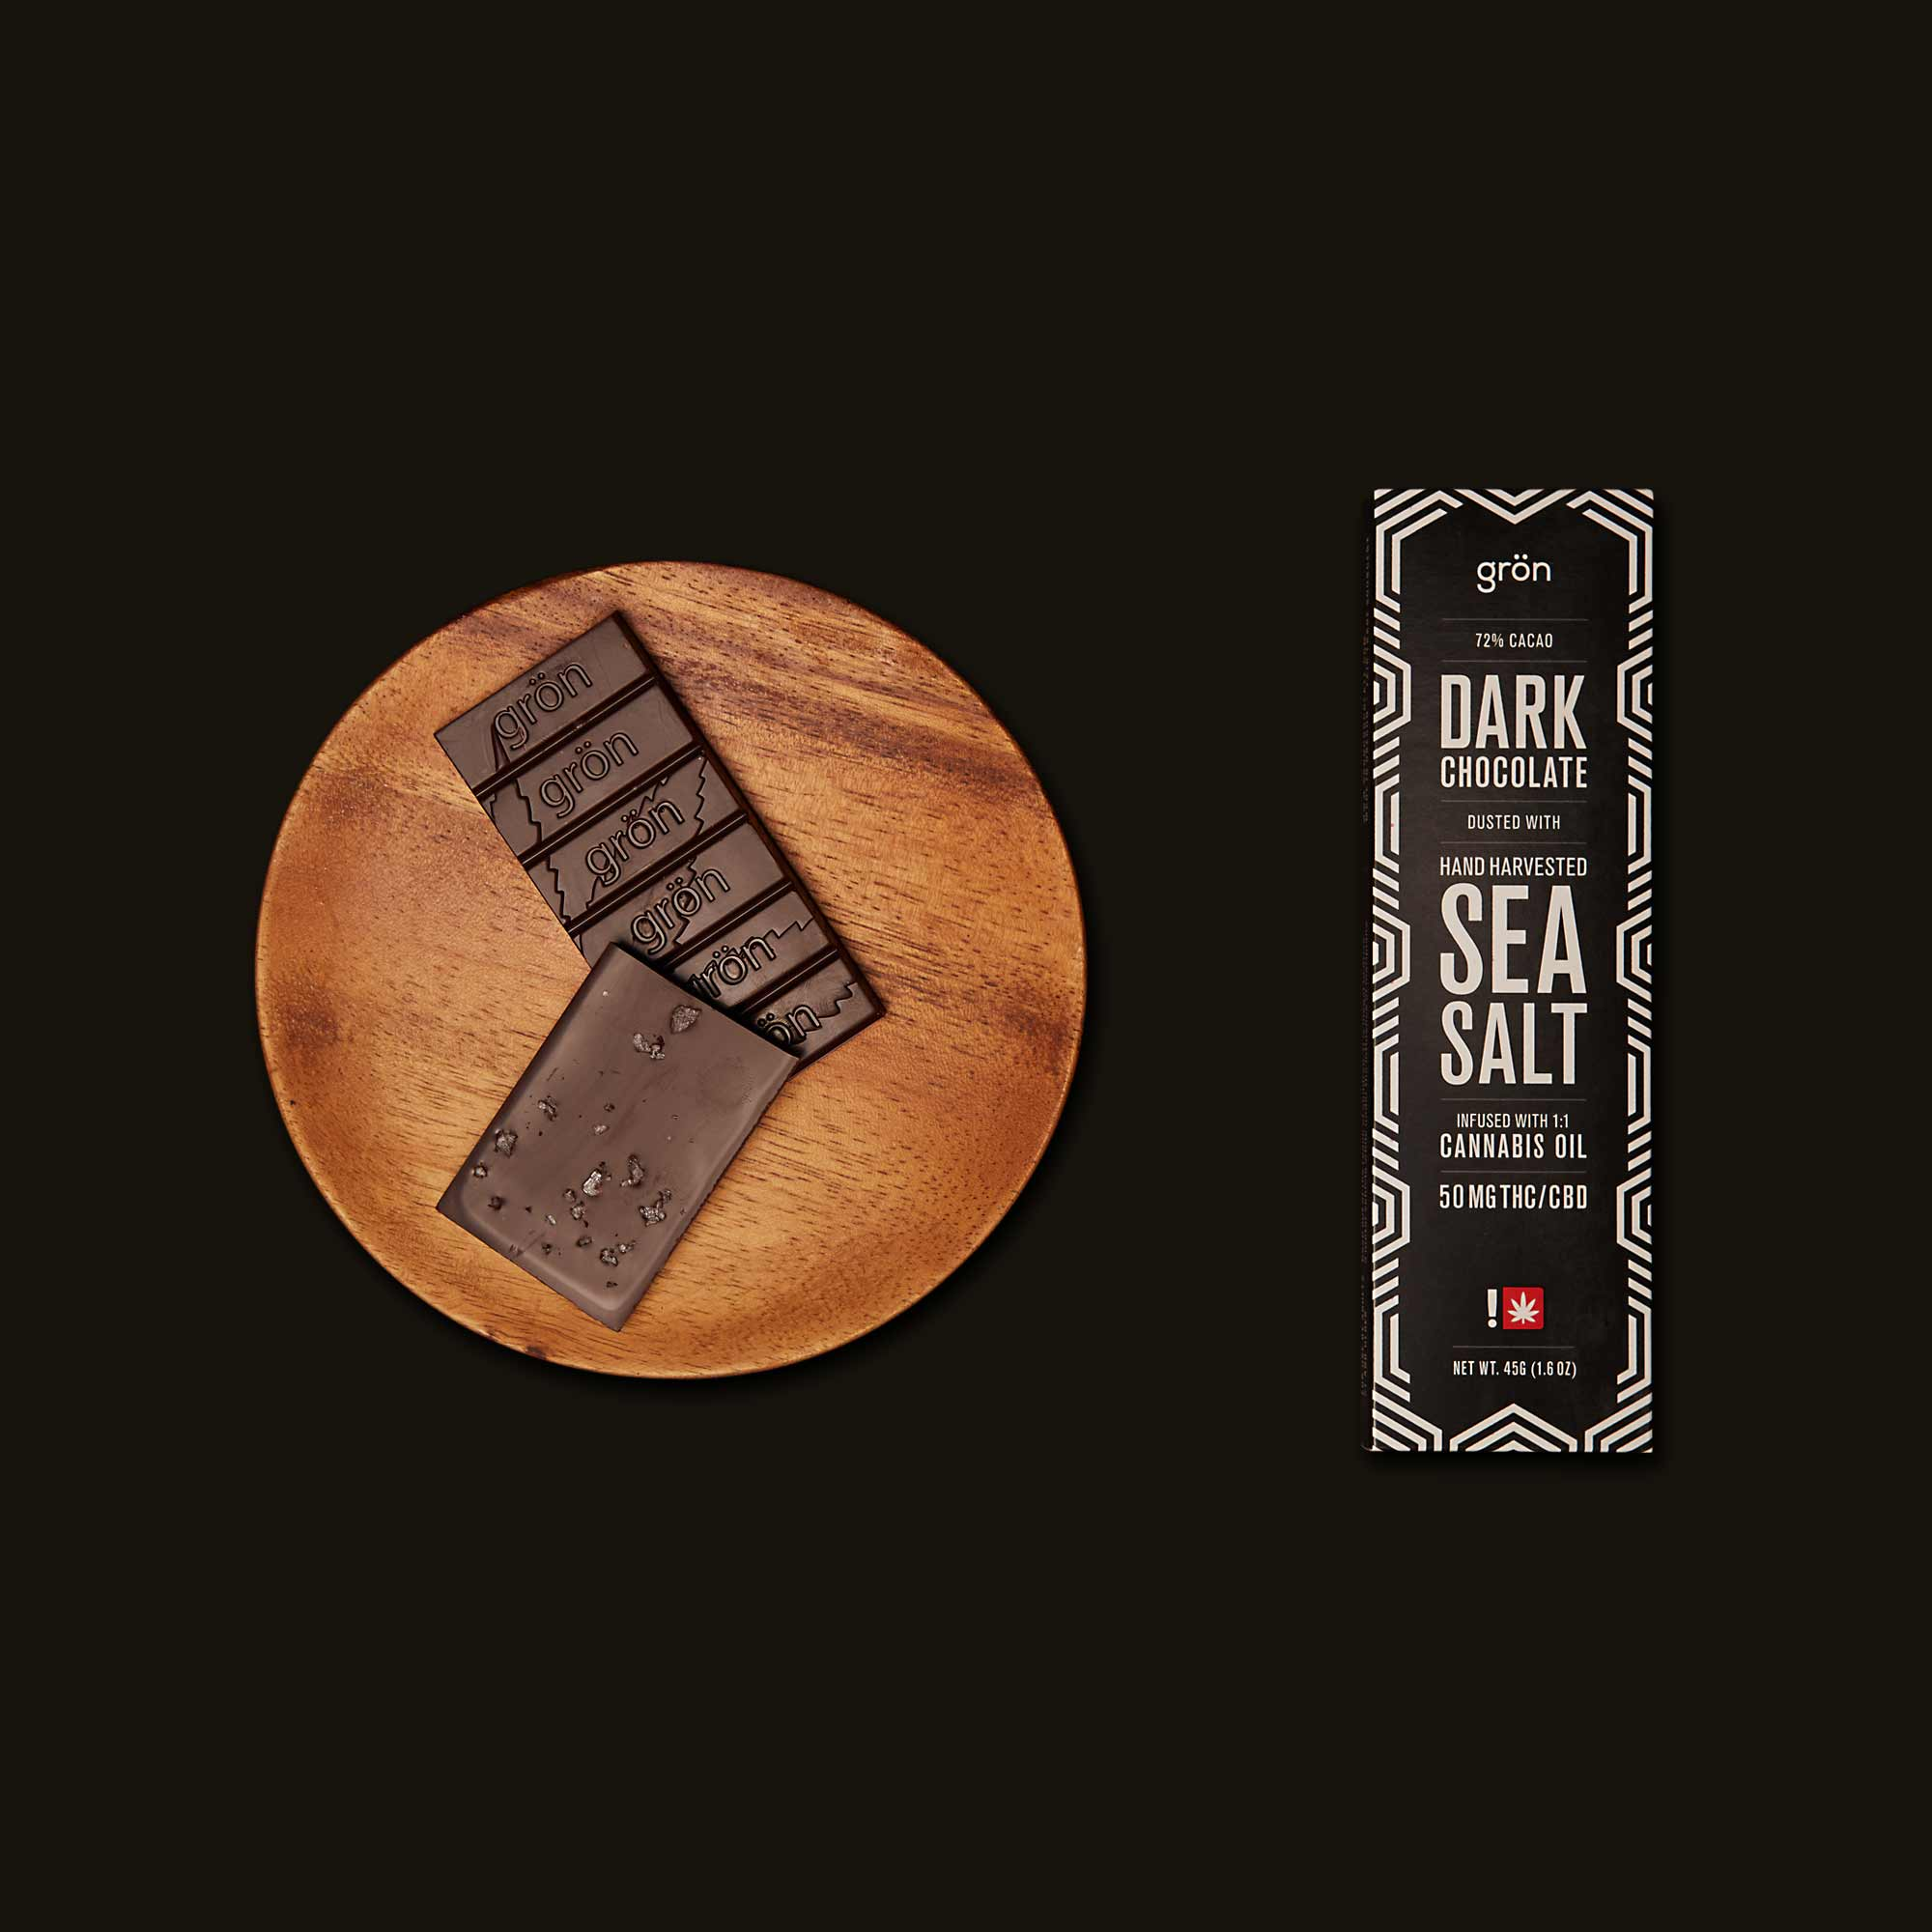 Grön Dark Chocolate Sea Salt Bar 1:1